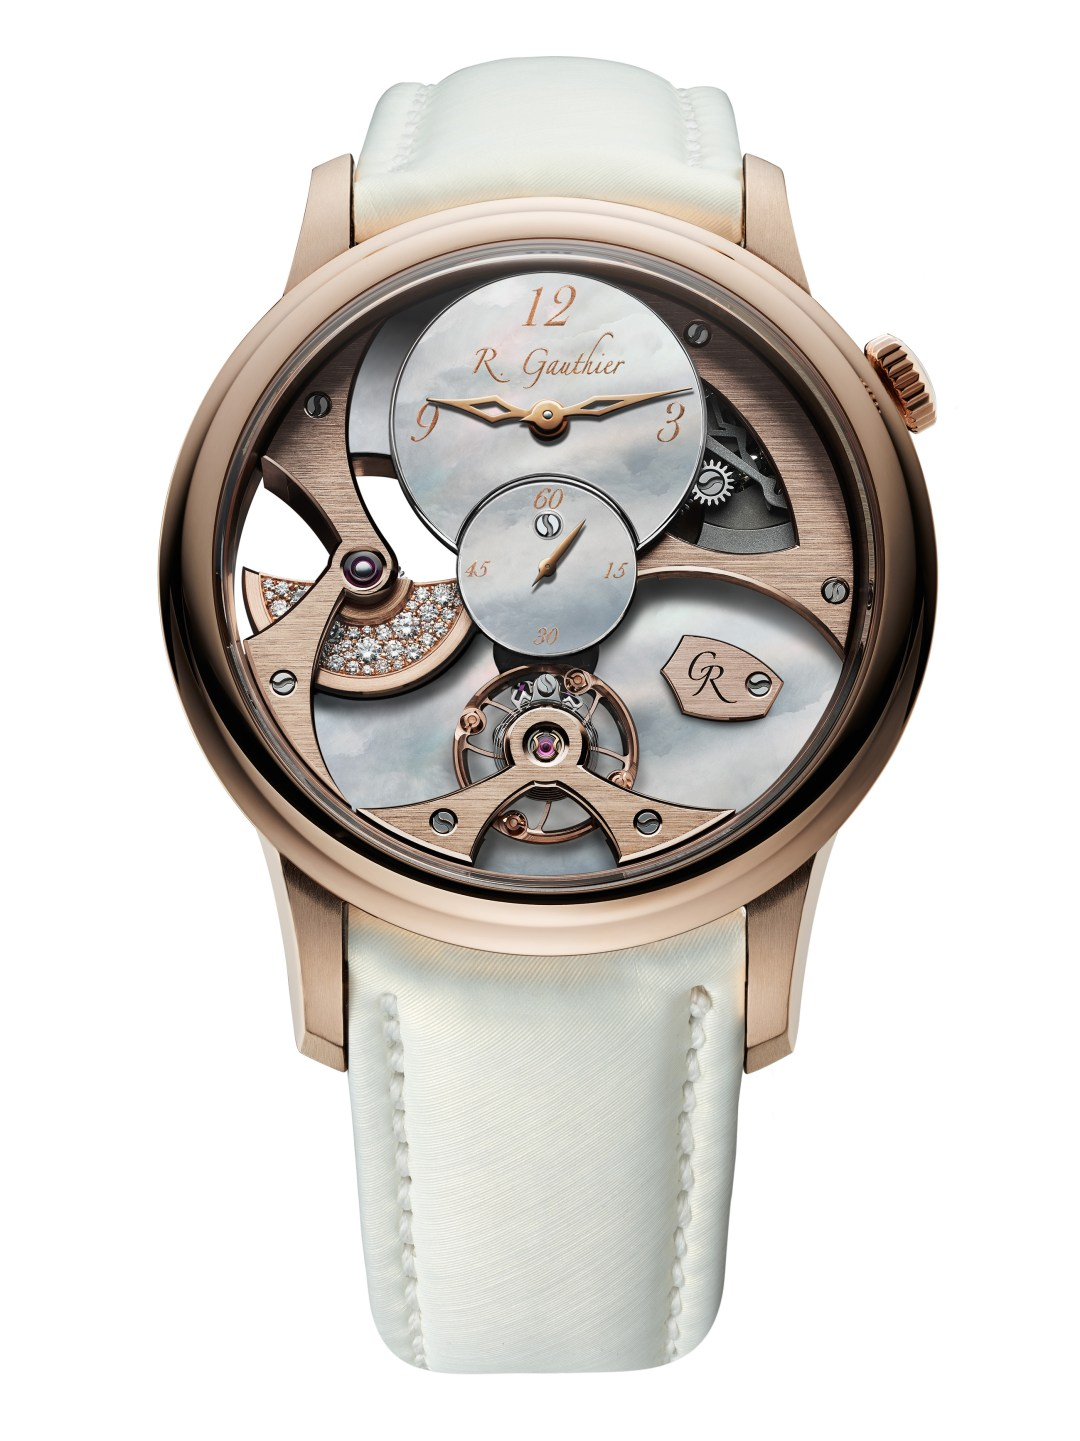 Romain_Gauthier_Insight_Micro-Rotor_Lady_7_red_gold_white_dial copy